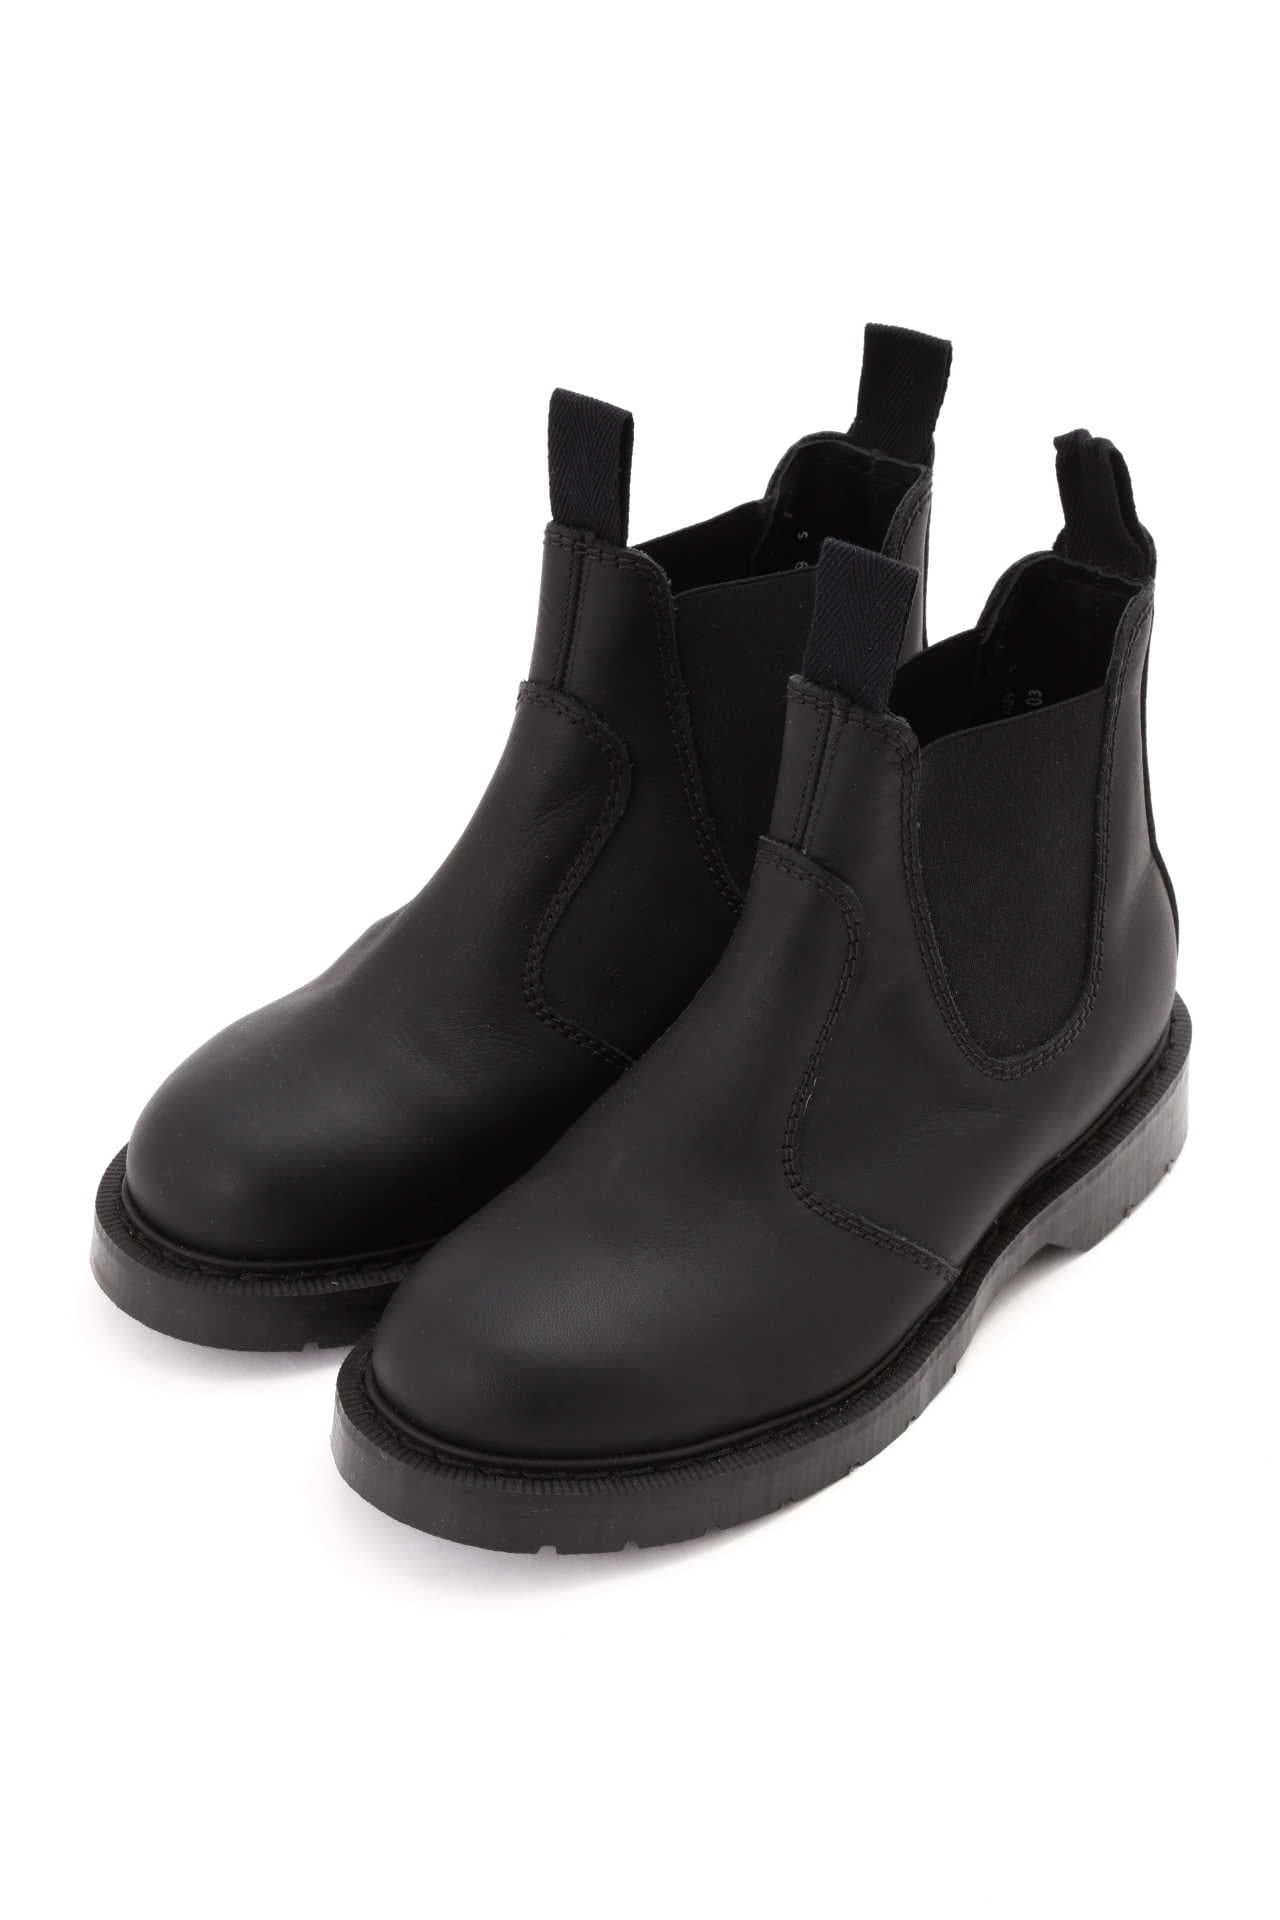 MHL CHELSEA BOOTS(MHL SHOP限定)6